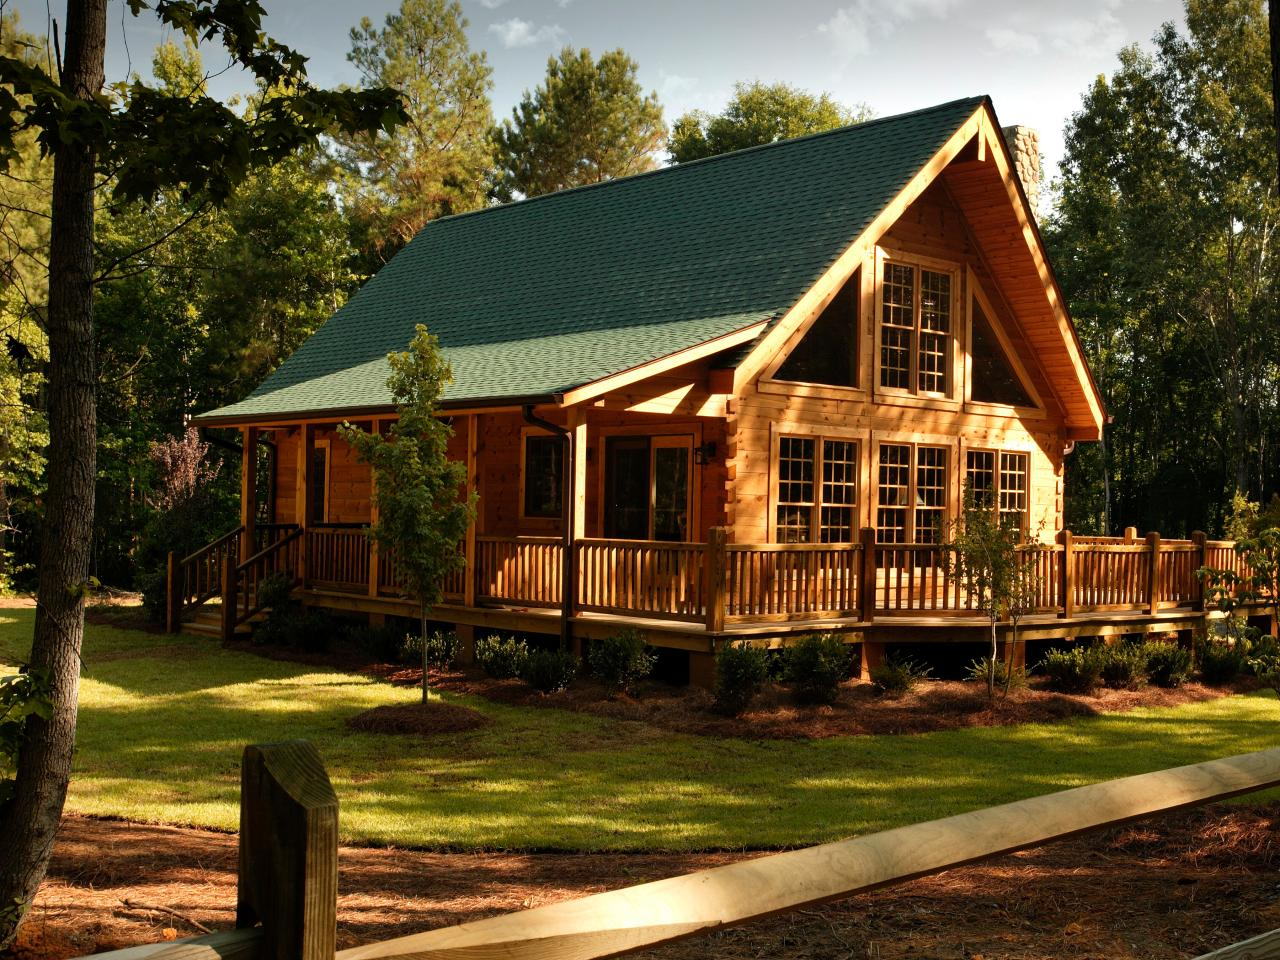 inspiring exterior design of Southland Log Homes with green roof and single hung windows plus door and railing ideas